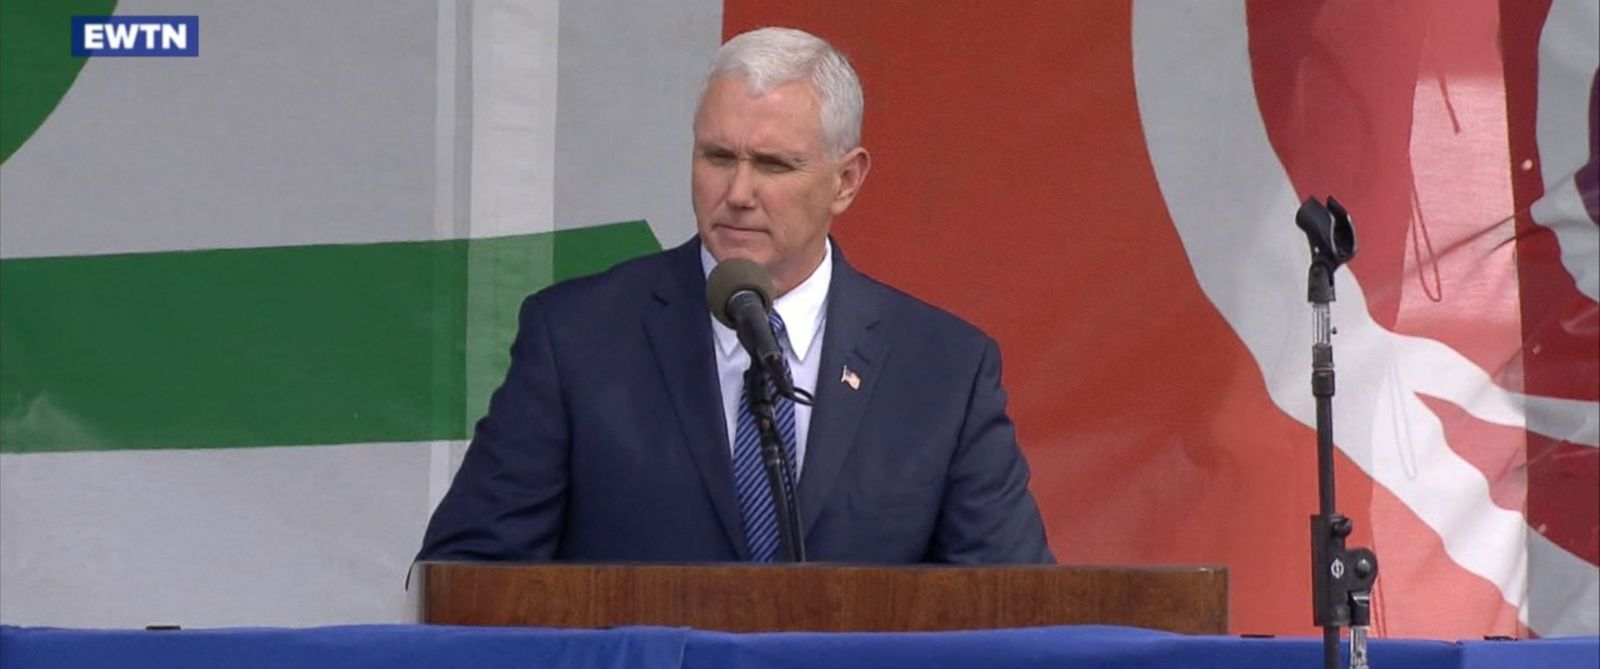 "VIDEO: The vice president told the crowd in Washington, D.C., that ""life is winning again in America."""